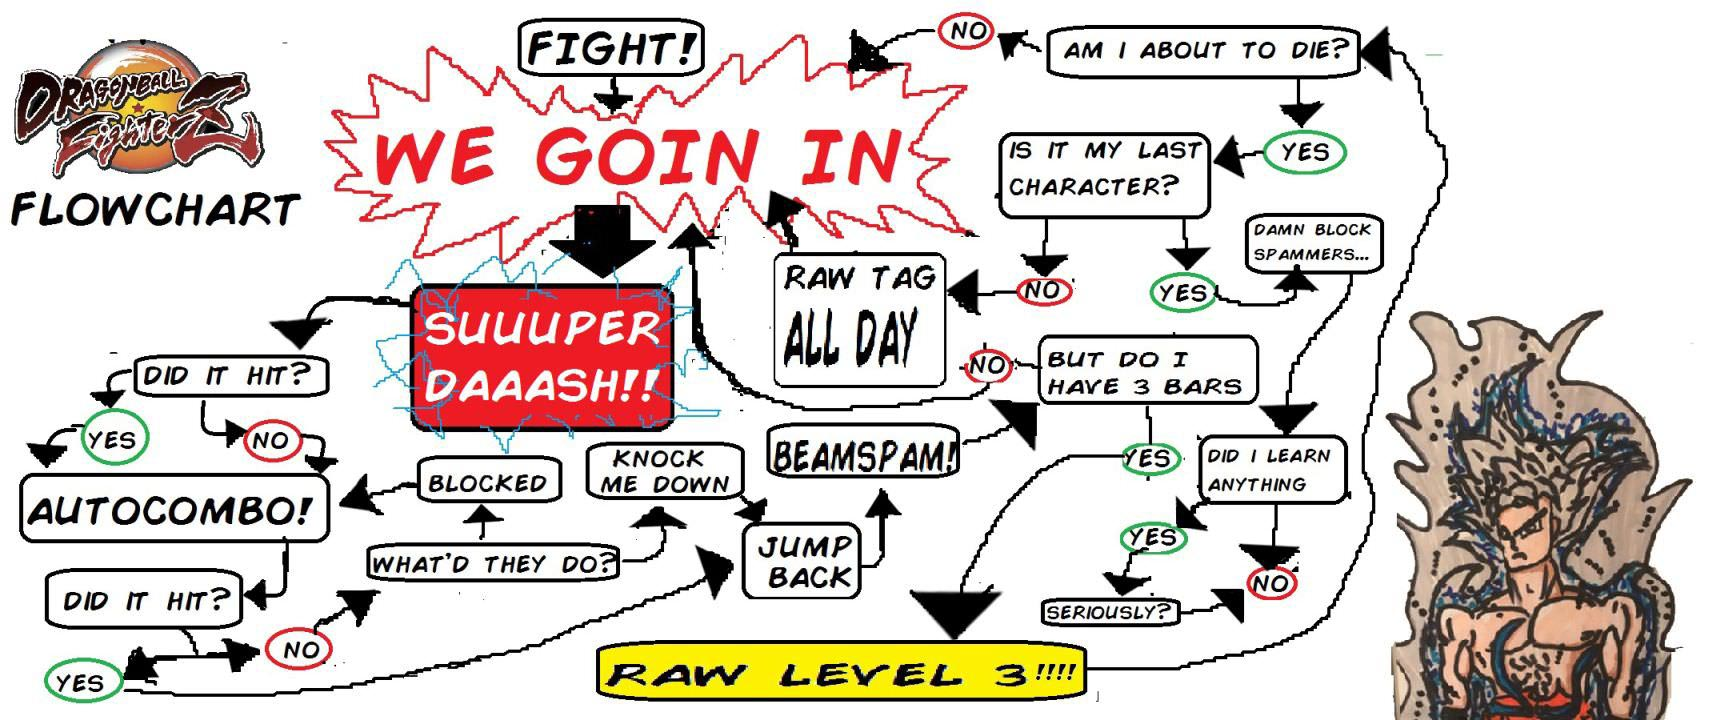 Dragon Ball FighterZ flowchart by WoolieVersus 1 out of 1 image gallery